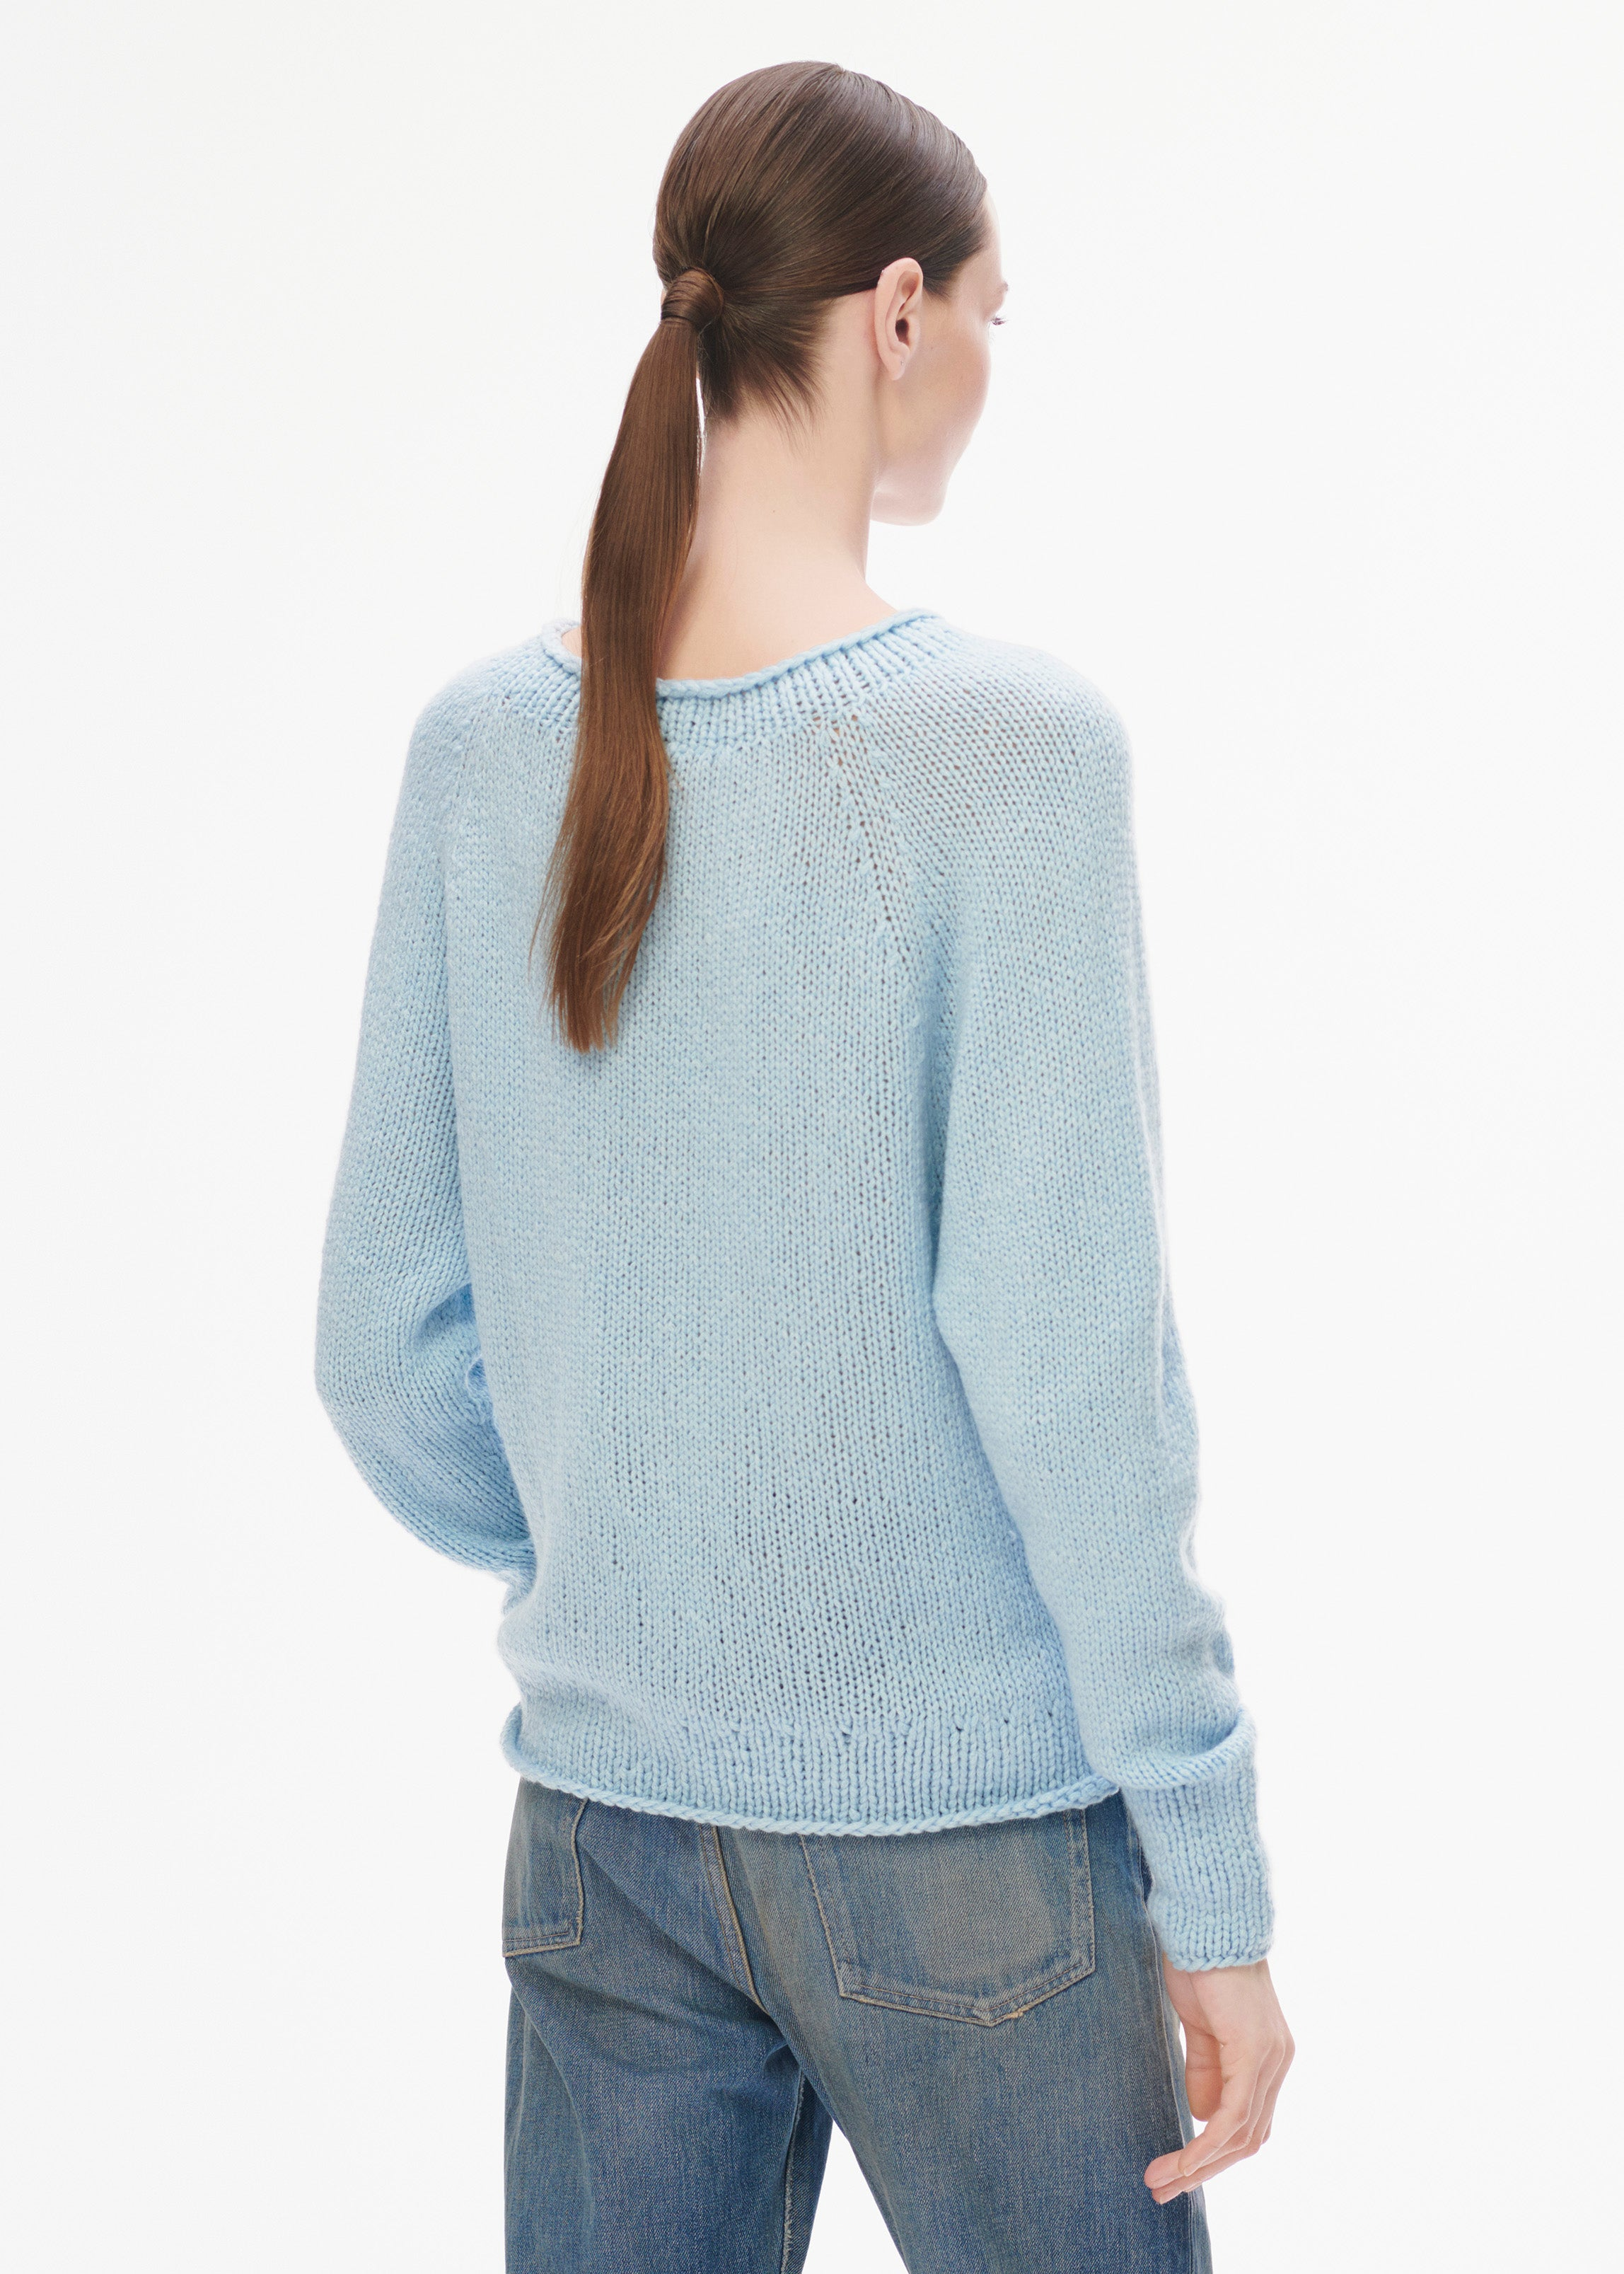 Hanami Sweater Light Blue